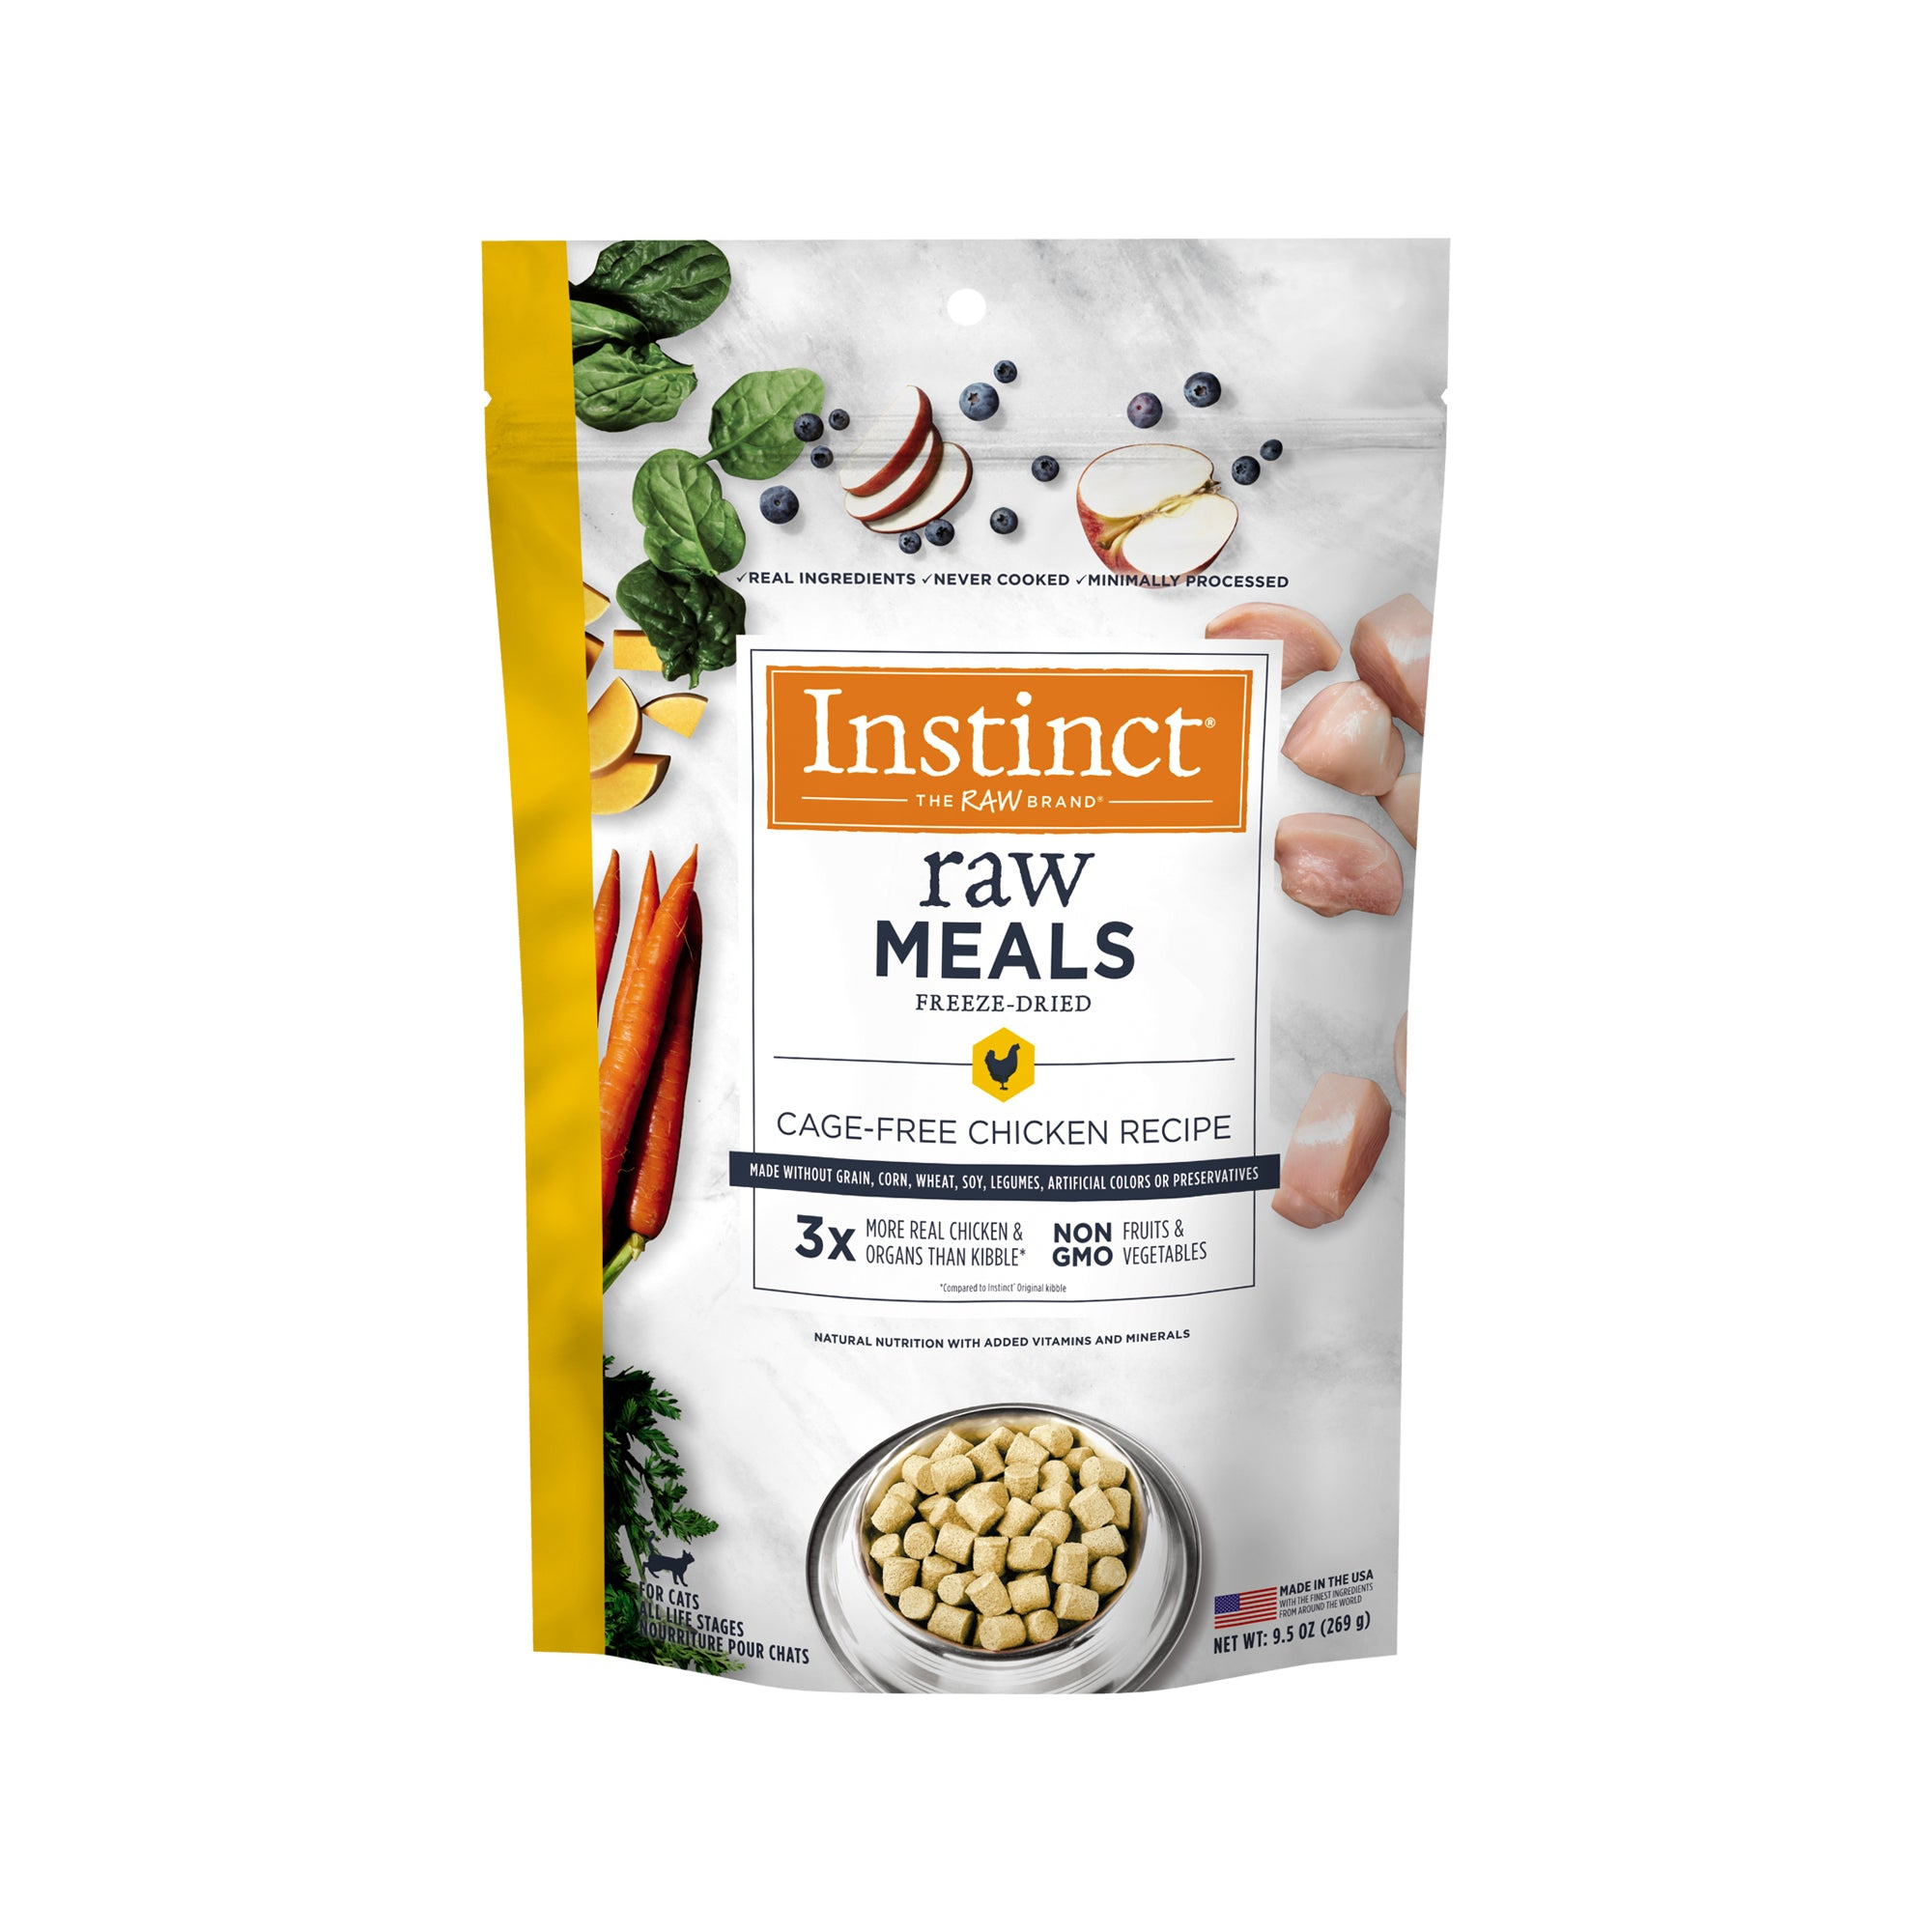 Instinct Raw Meals Grain-Free Cage-Free Chicken Recipe Freeze-Dried Cat Food